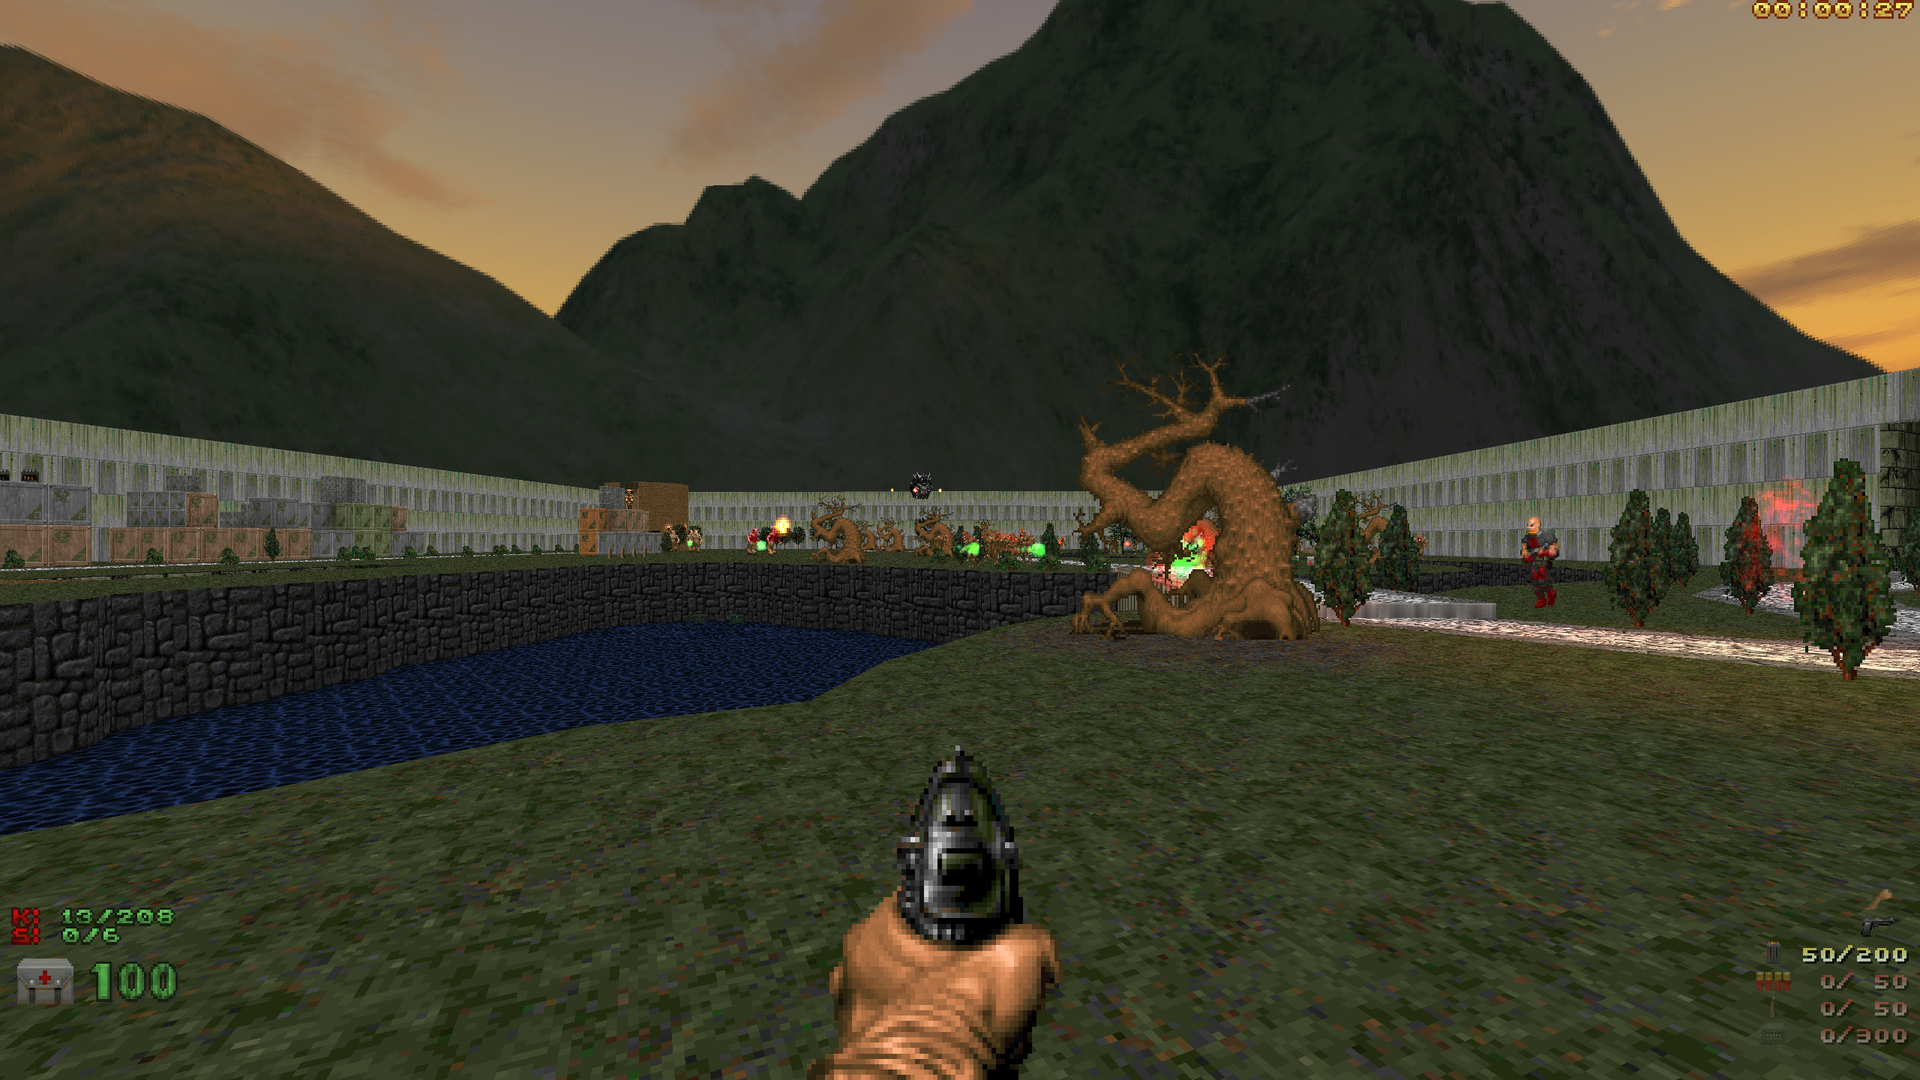 Screenshot_Doom_20210303_105639.png.f2f4ad7f4b6e3d3dbe8f44771f41f2ea.png